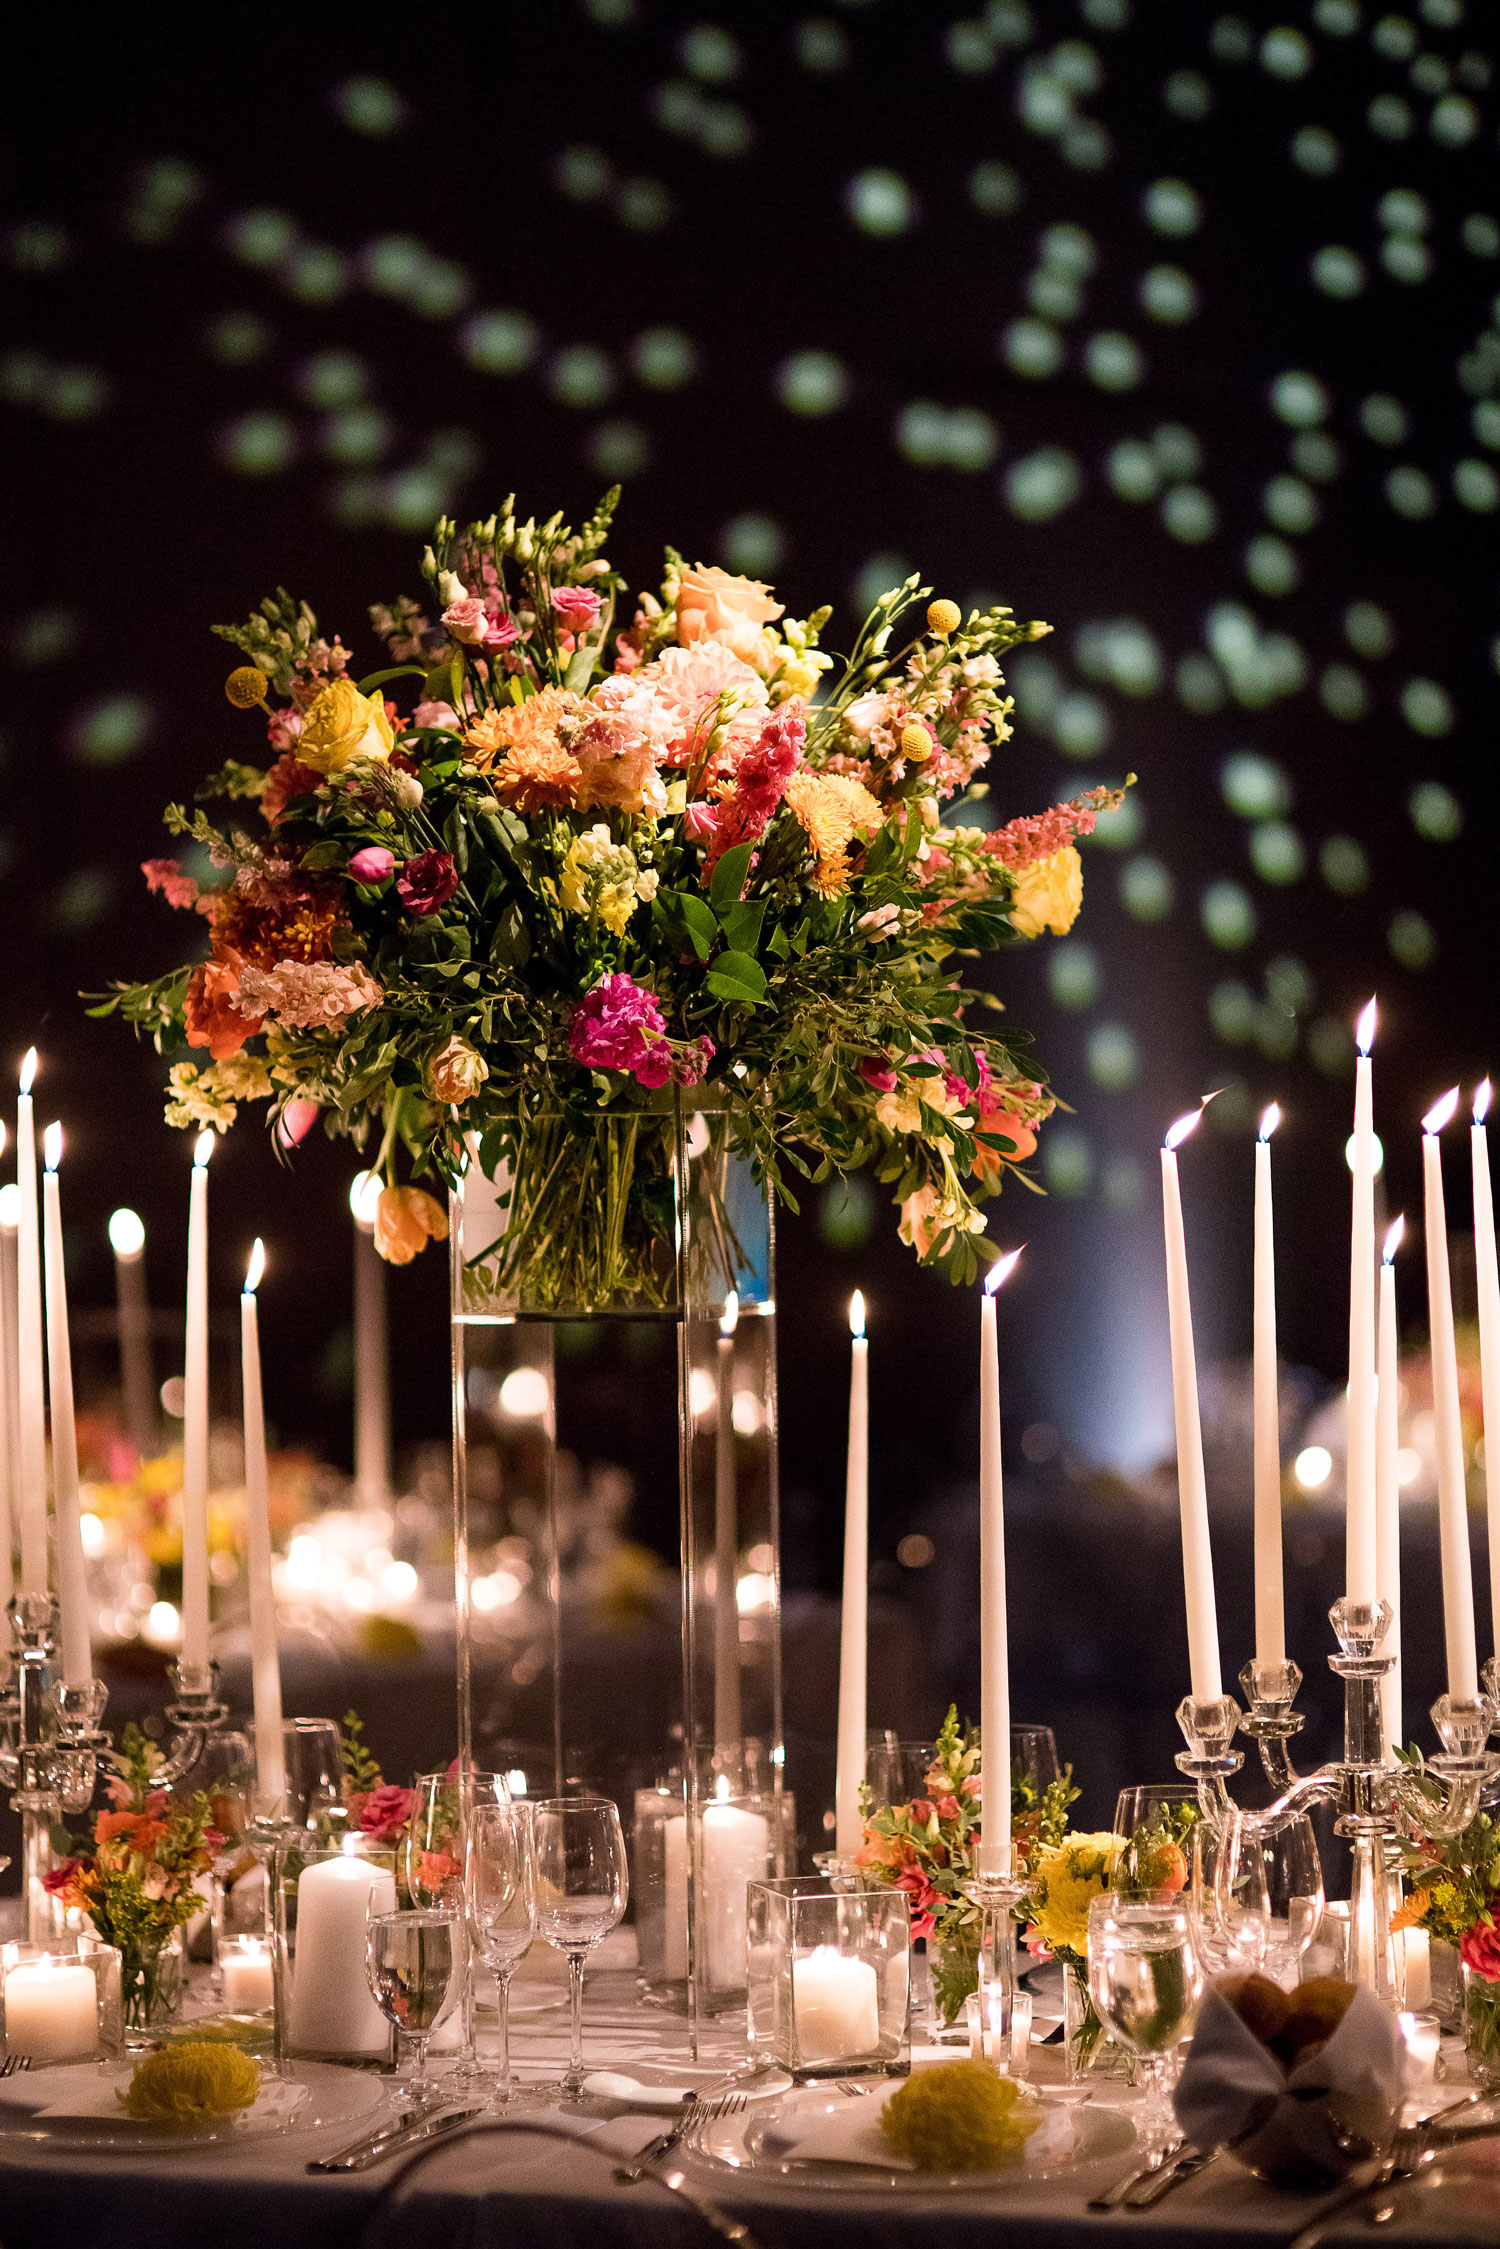 lucite glass vase with colorful flowers tall centerpiece next to taper candles wedding ideas